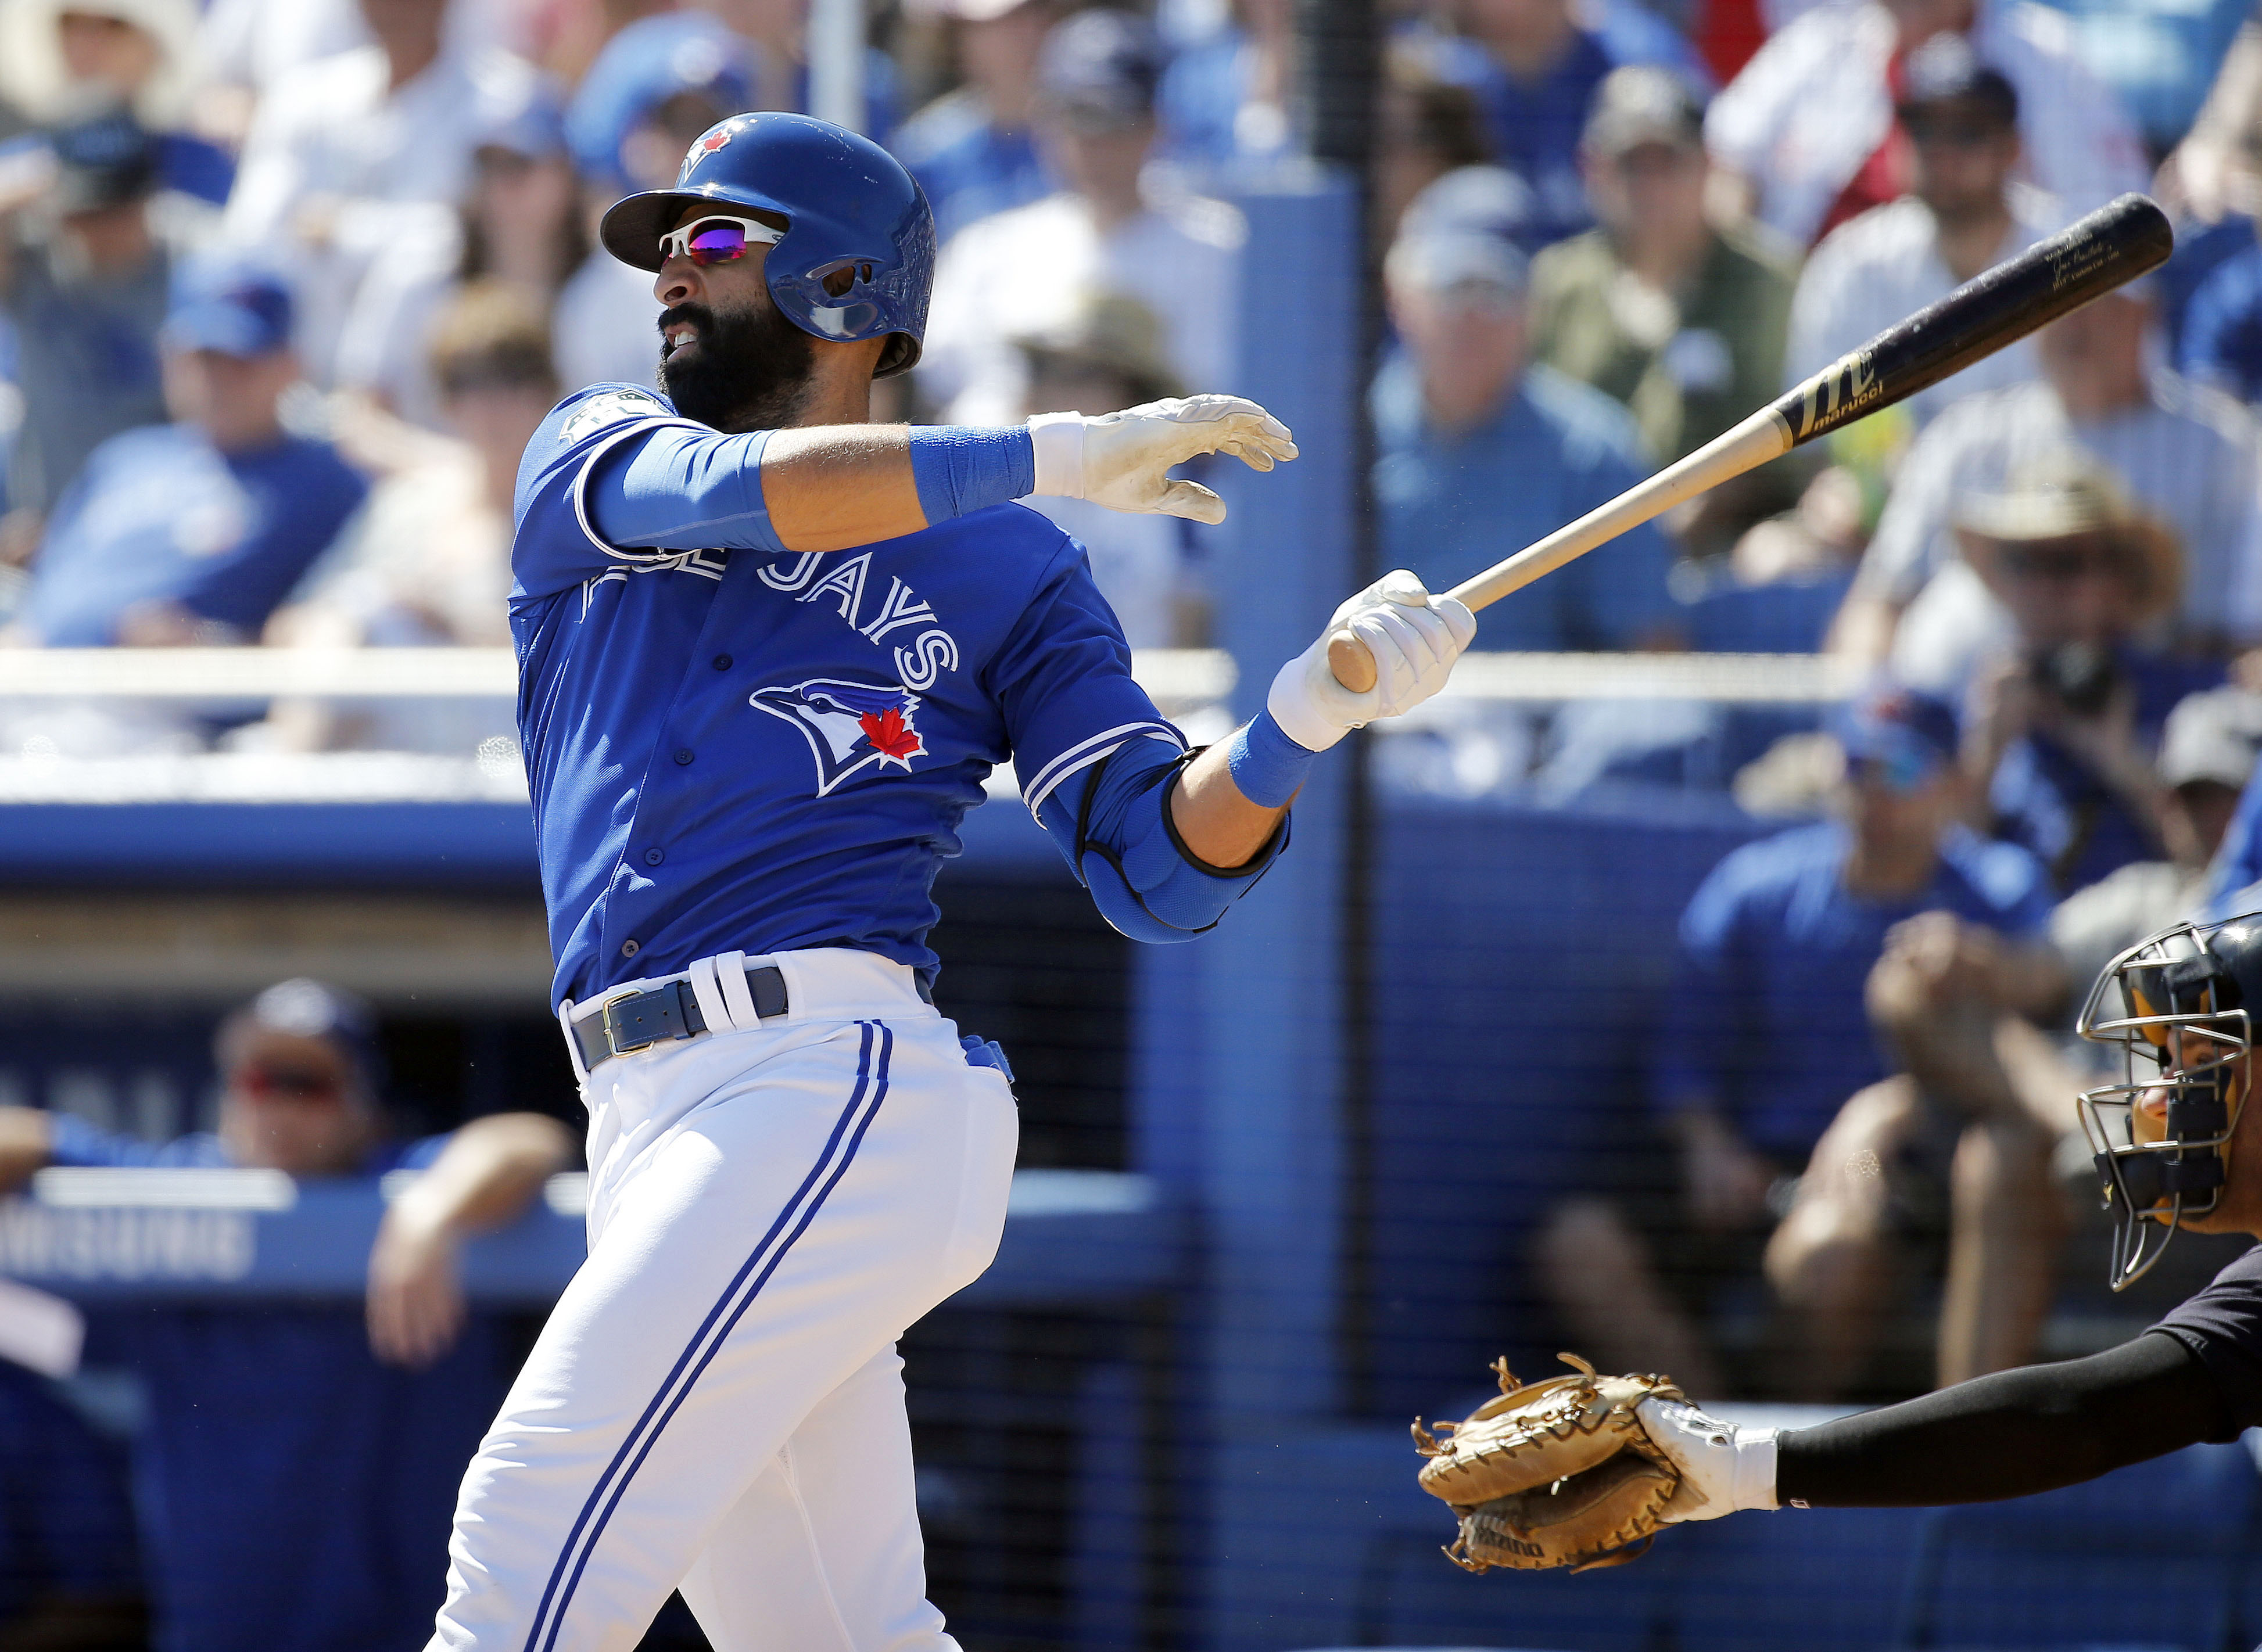 9913667-mlb-spring-training-new-york-yankees-at-toronto-blue-jays